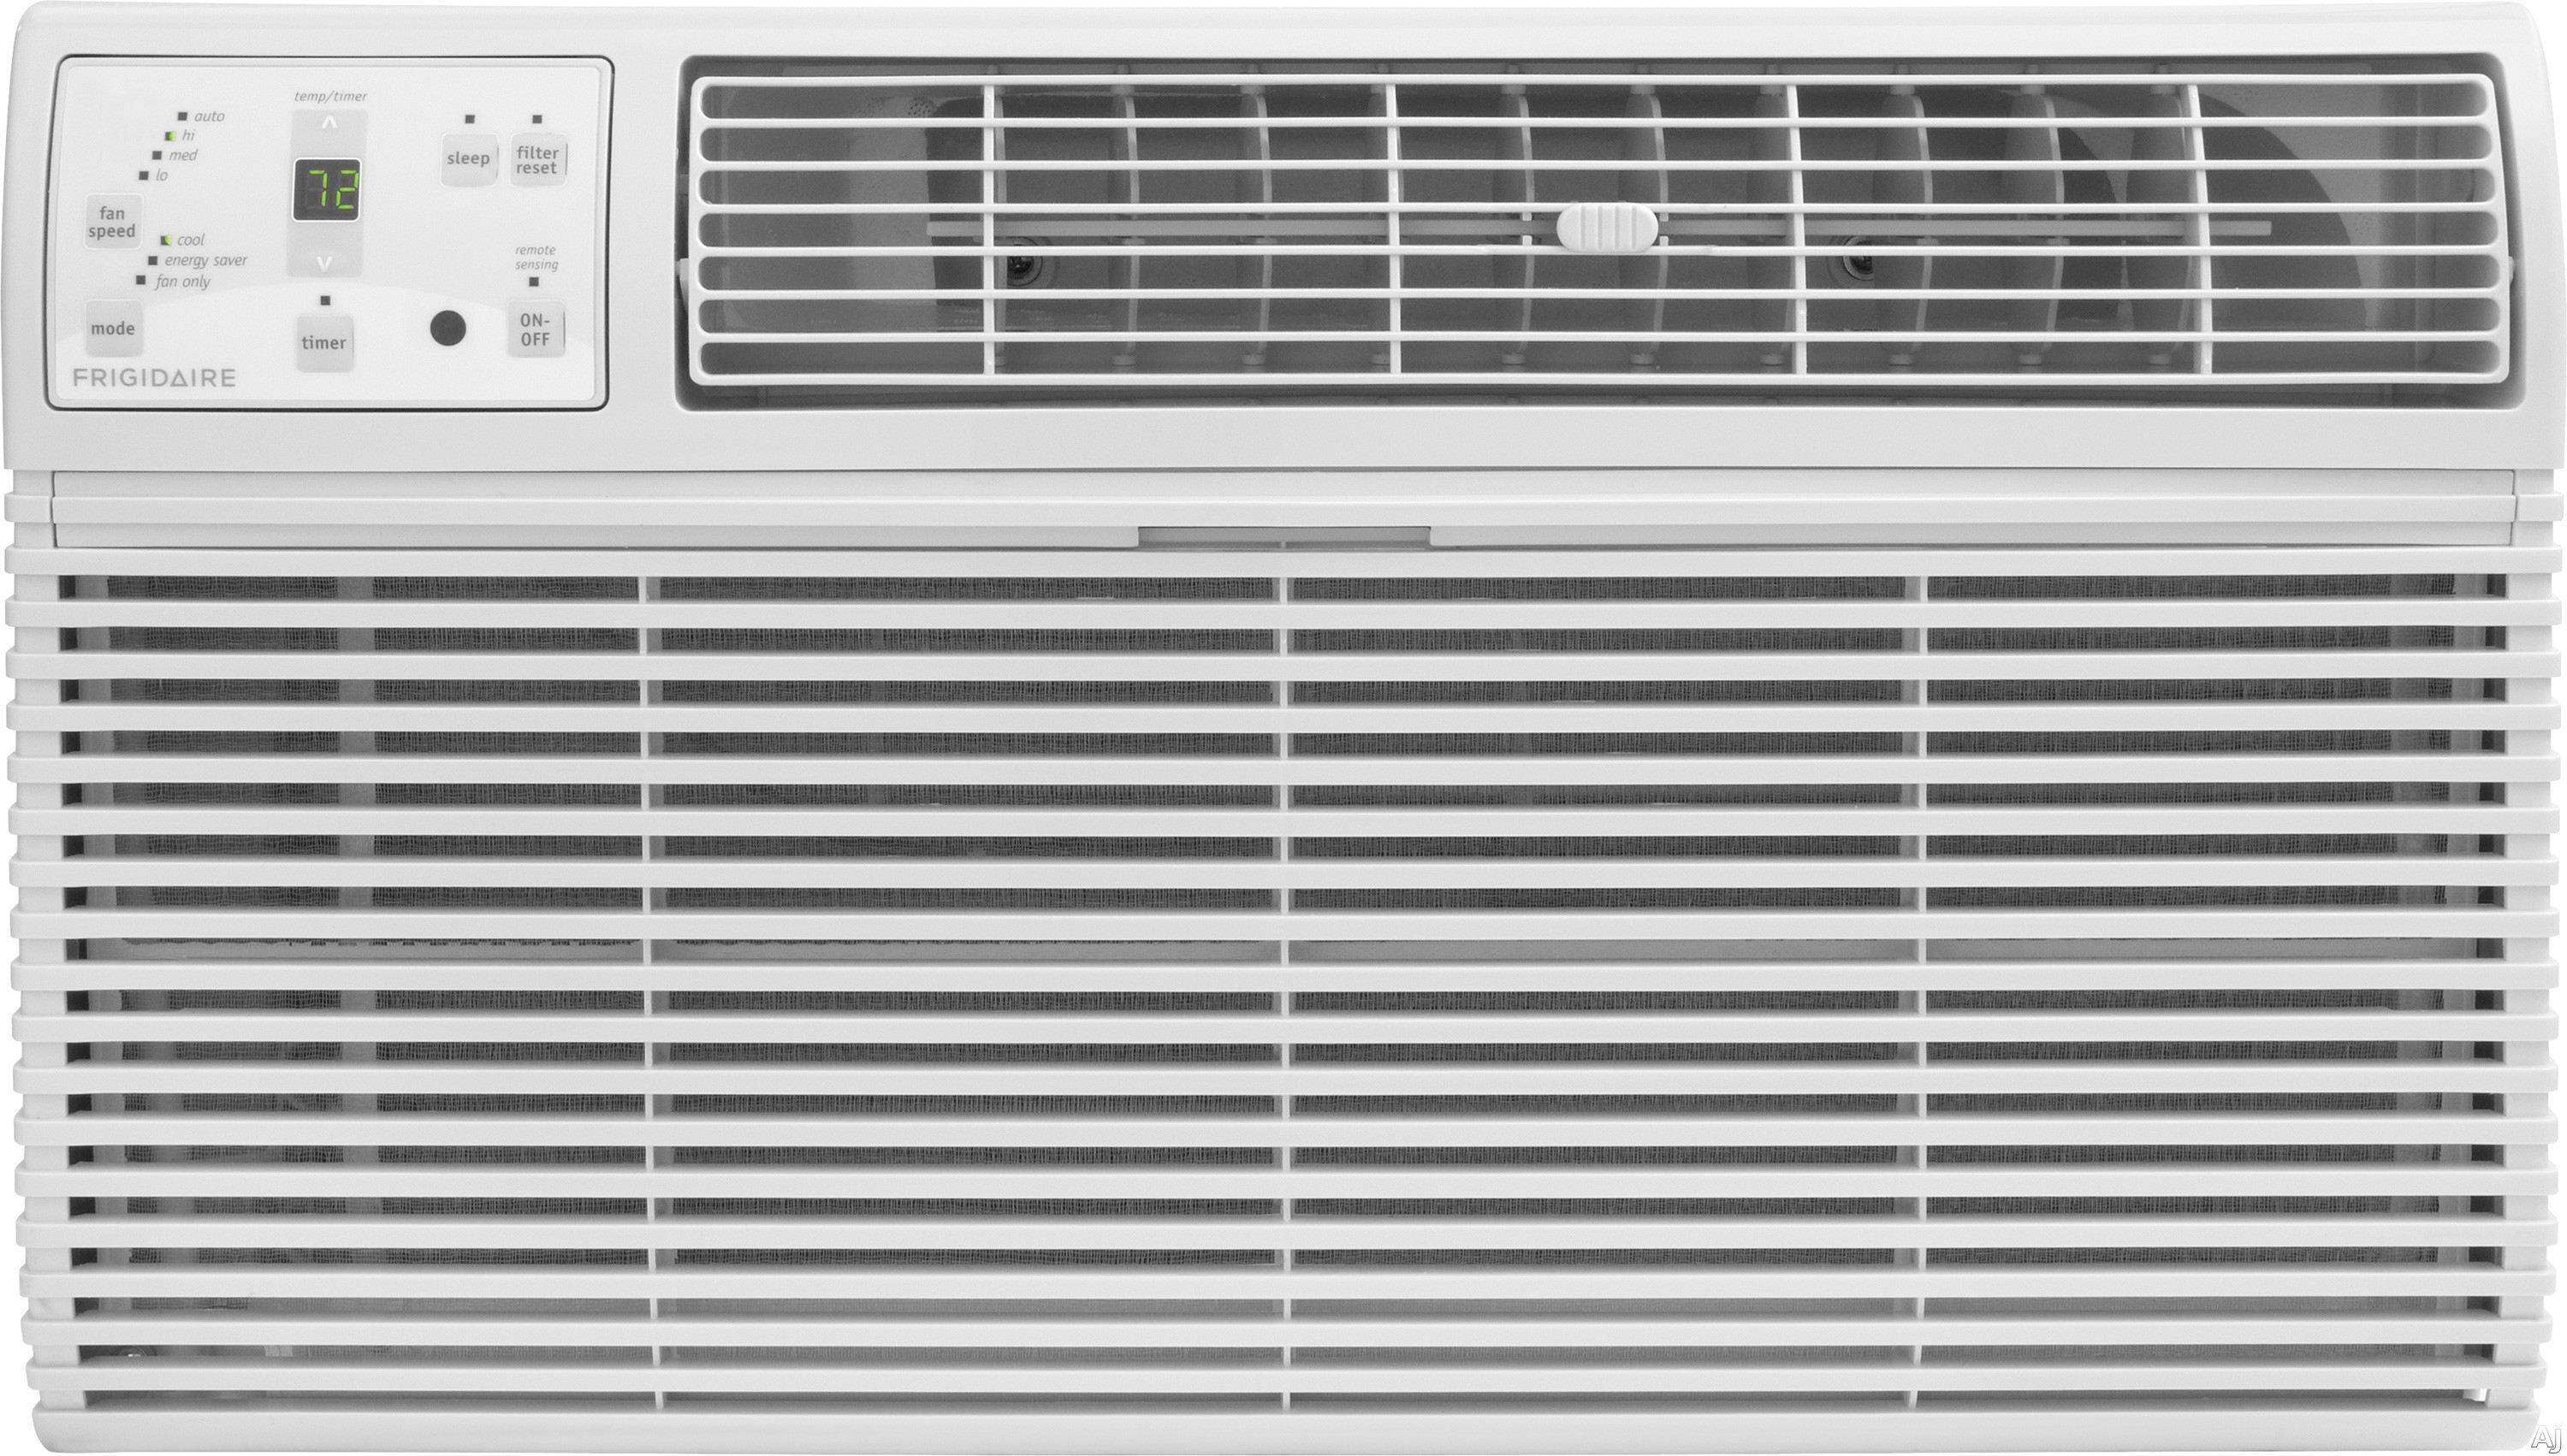 Frigidaire FFTA1422R2 14,000 BTU Thru-the-Wall Air Conditioner with 9.3 EER, R-410A Refrigerant, 4.3 Pts/Hr Dehumidification, 700 sq. ft. Cooling Area, Energy Saver and 230/208 Volts FFTA1422R2